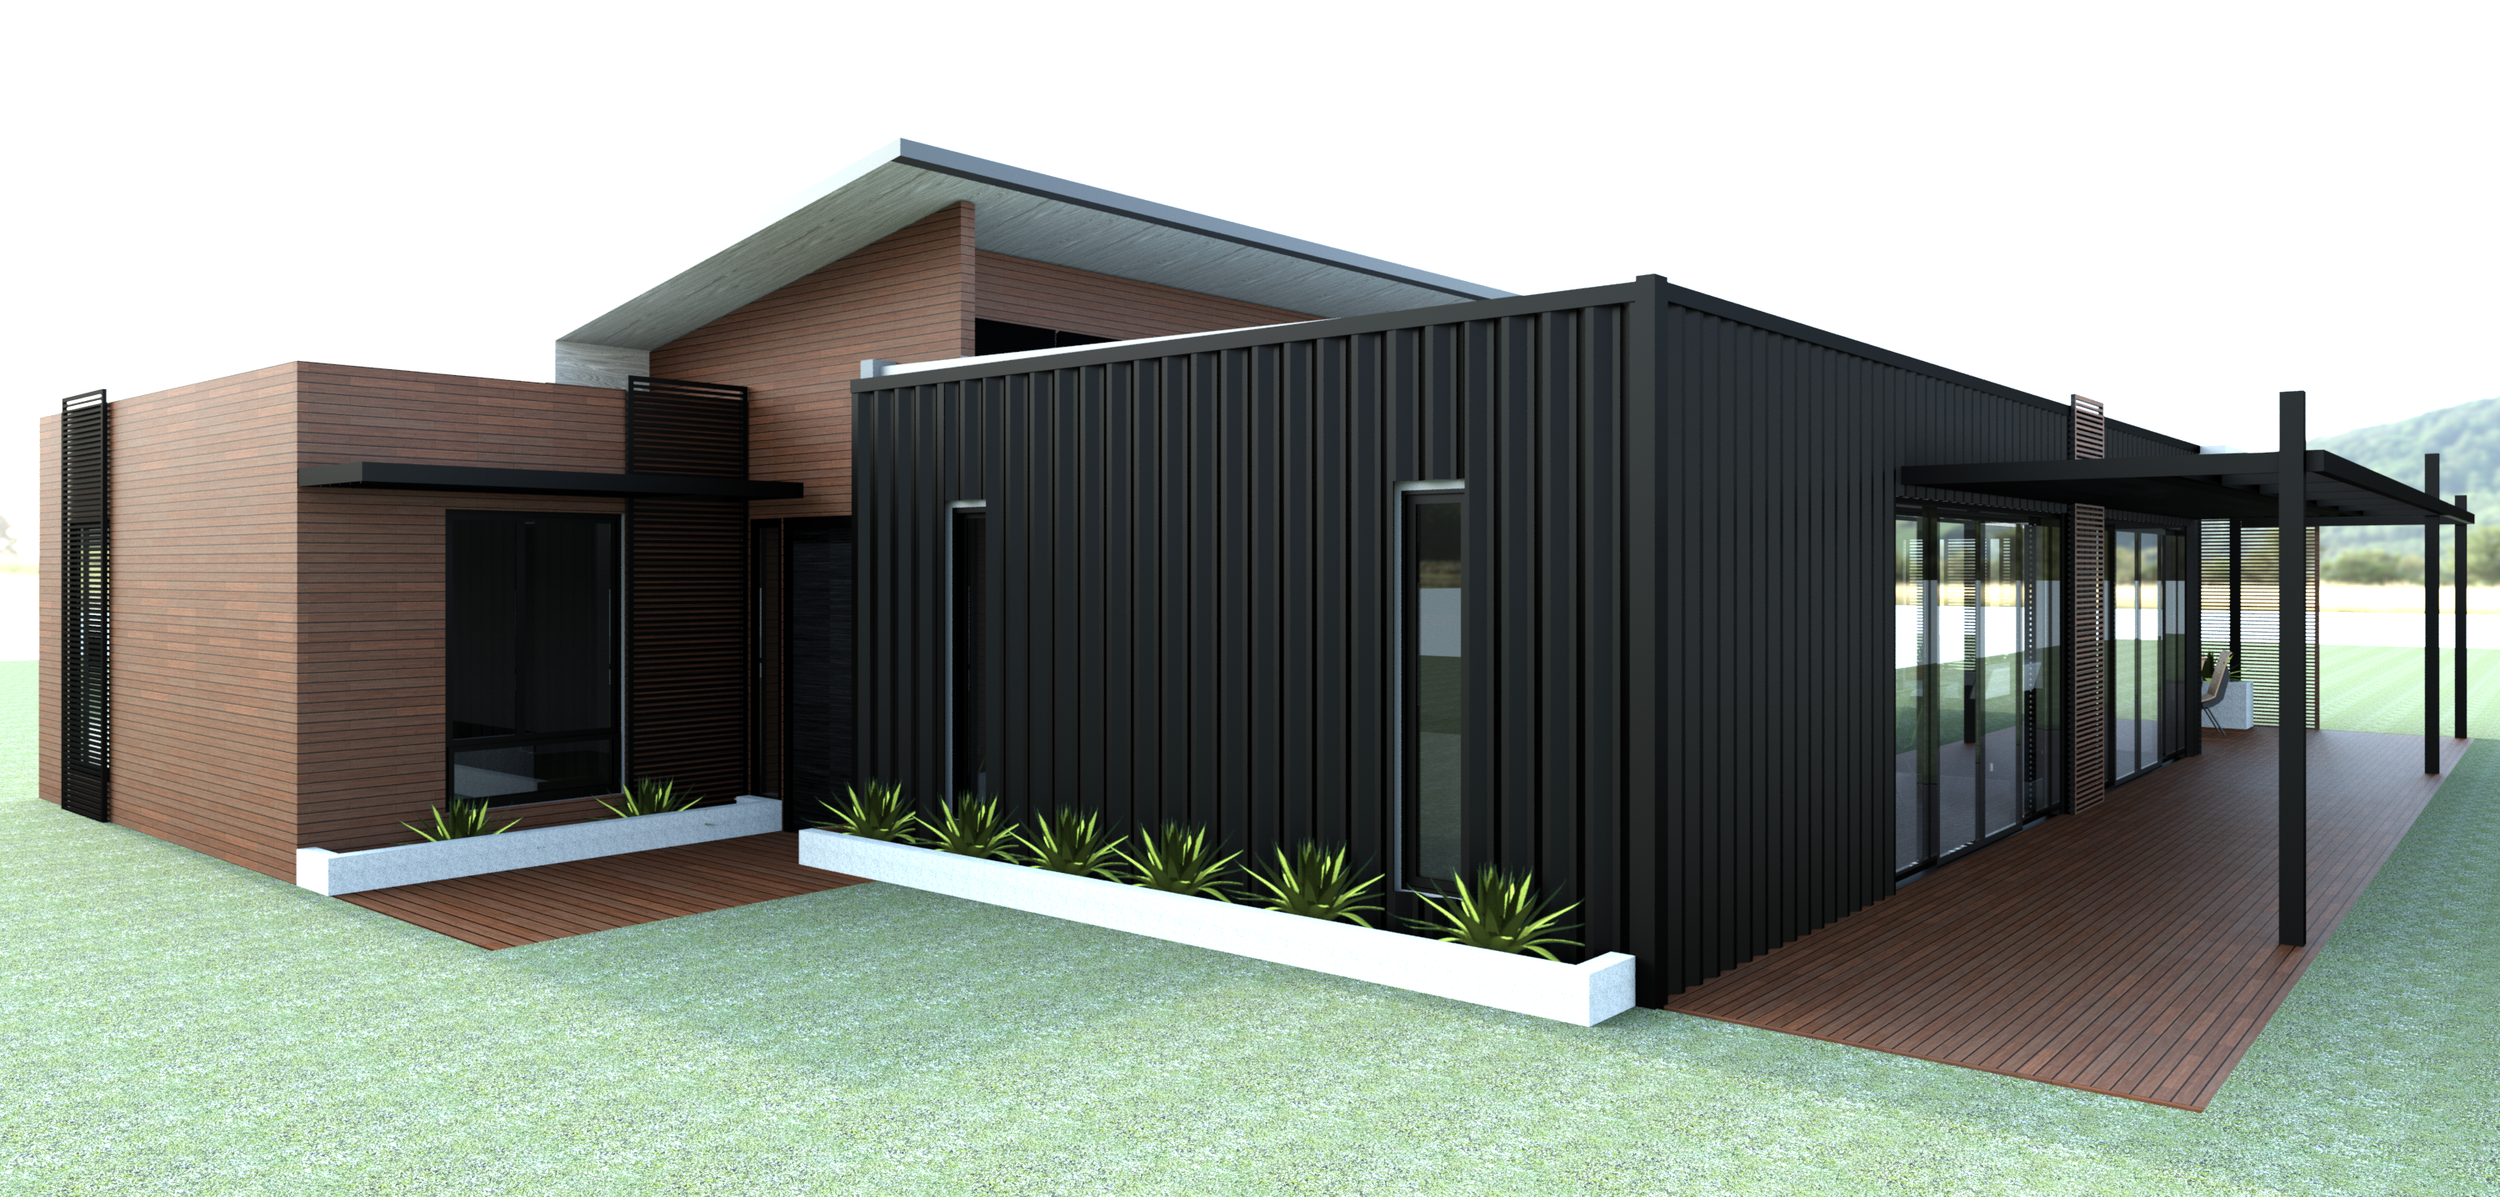 2_CONTAINER_HOUSE_13_12_15.rte_2015-Dec-13_04-01-45PM-000_3D_View_147.png